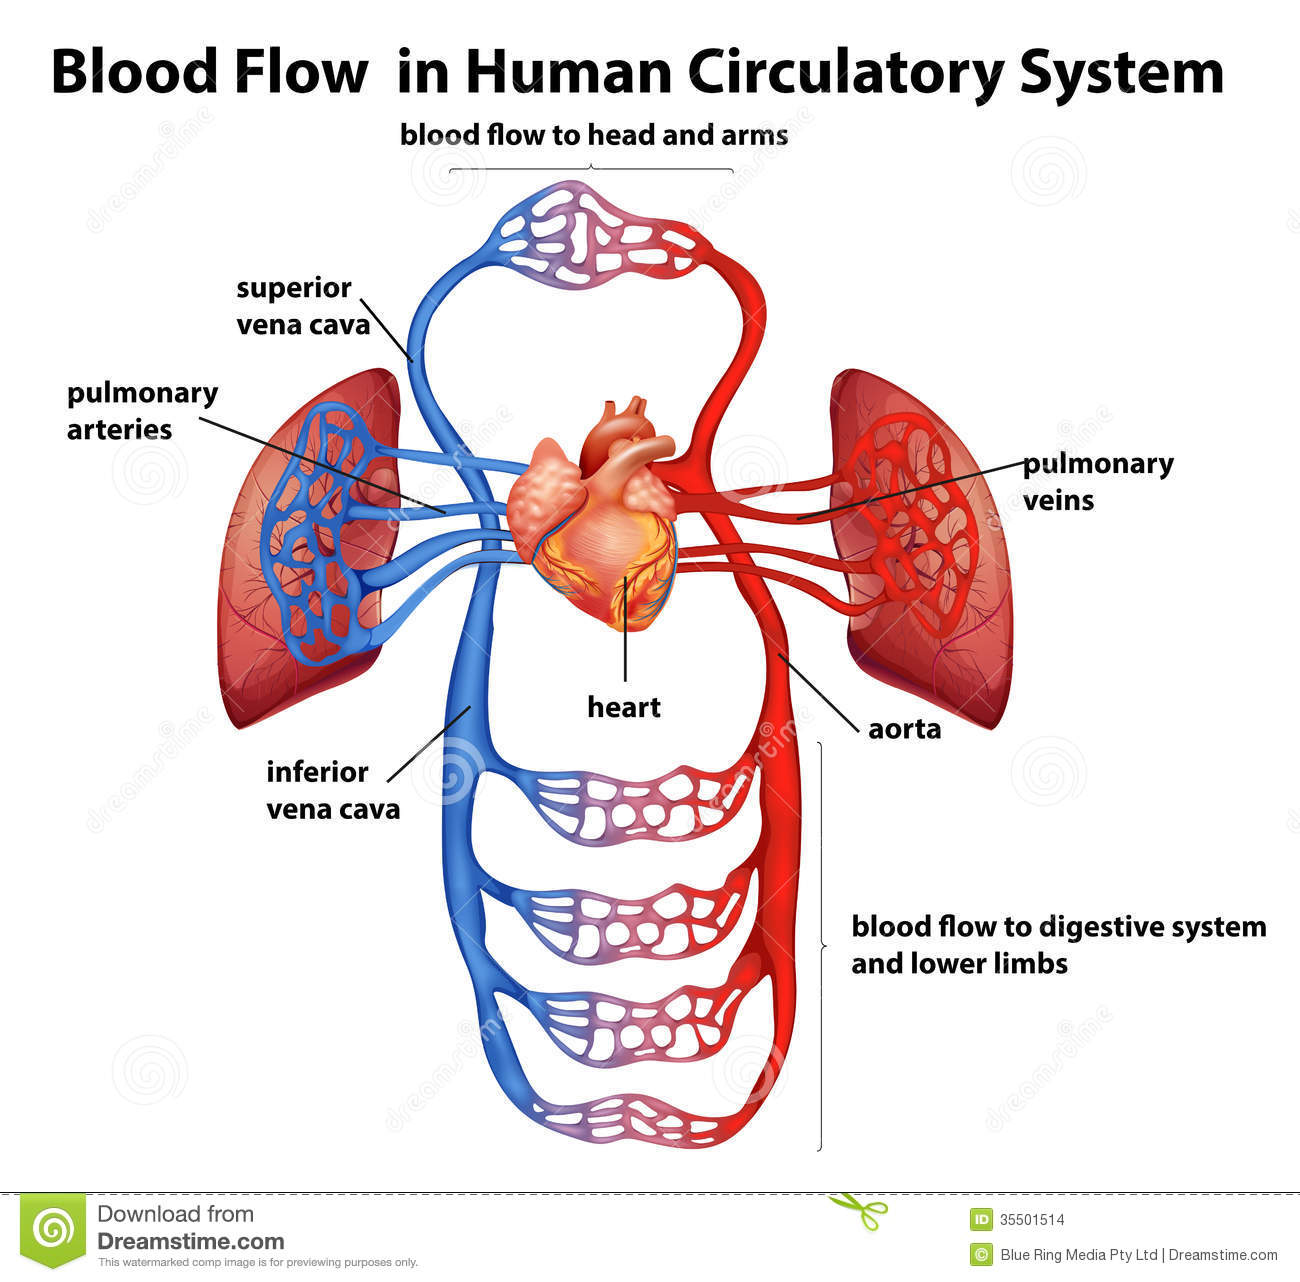 Respiratory System Worksheets Pdf together with Lecture 6 Transport Circulationpart 1 17193347 in addition Blood Vessel Eruption In Brain further The Blood Supply To The Brain Consists Of additionally Arteries Of The Leg Anatomy Anatomy And Blood Supply Of Leg Anatomy Human Body. on human blood circulatory system